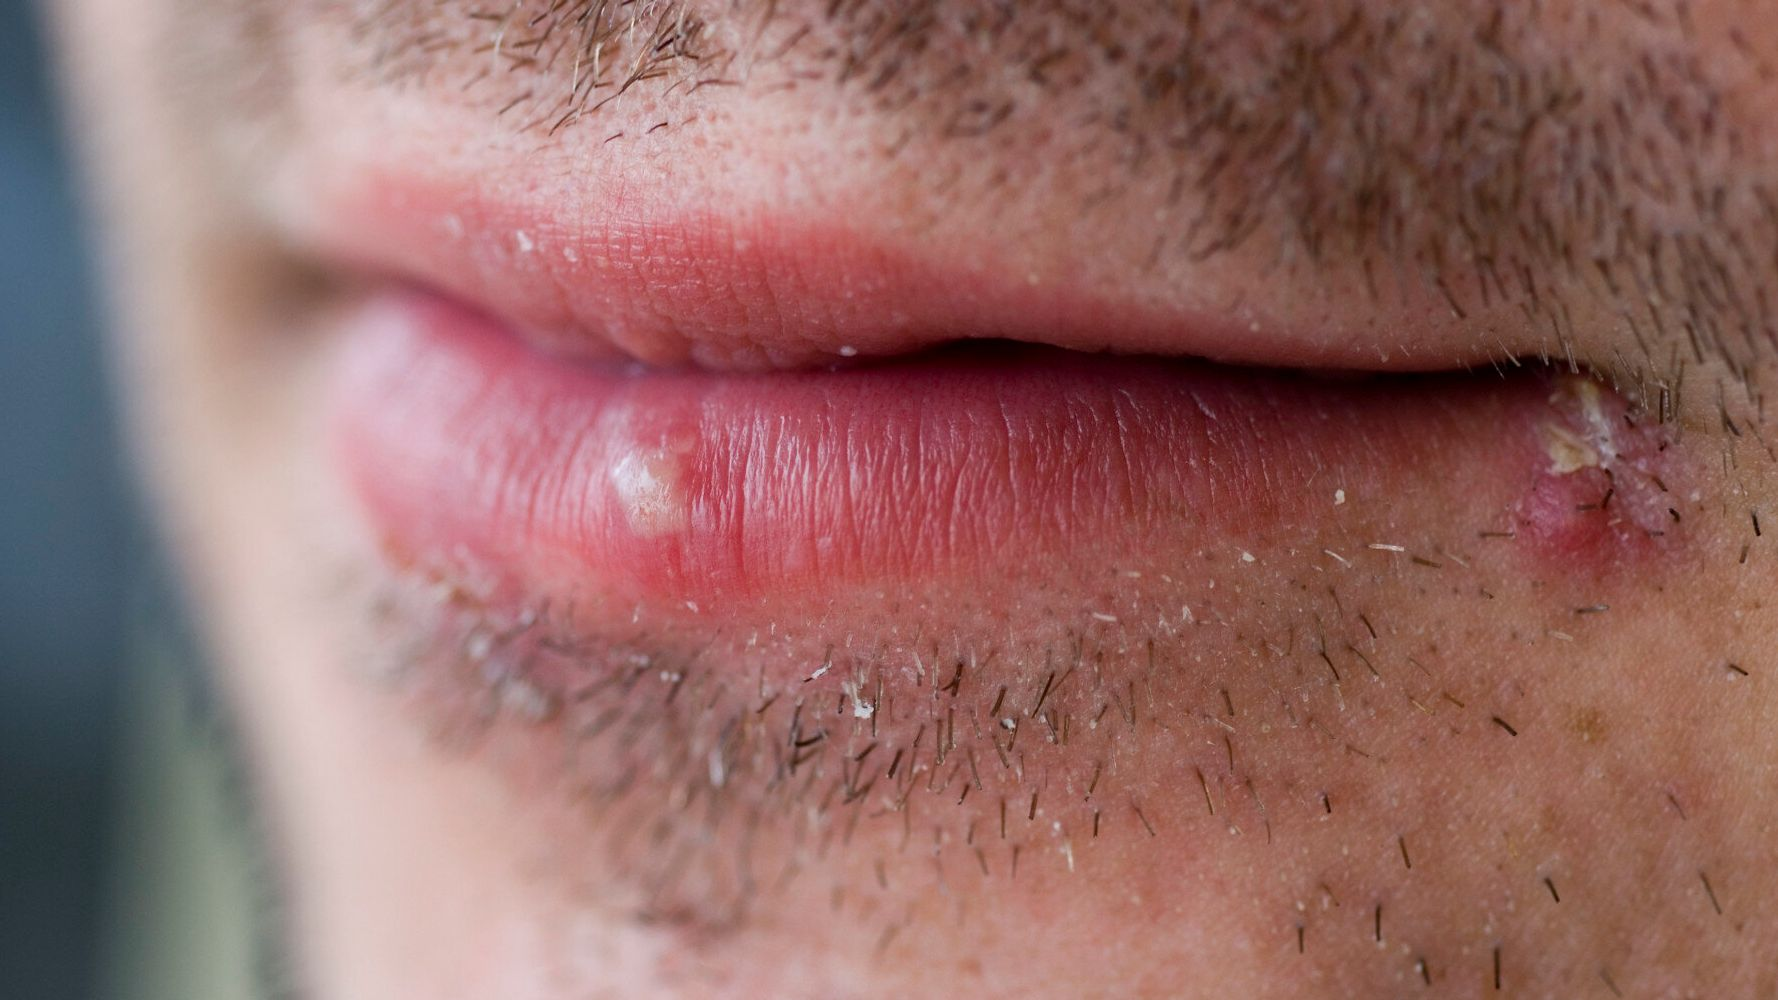 Herpes Virus Could Successfully Treat Skin Cancer, Study Suggests